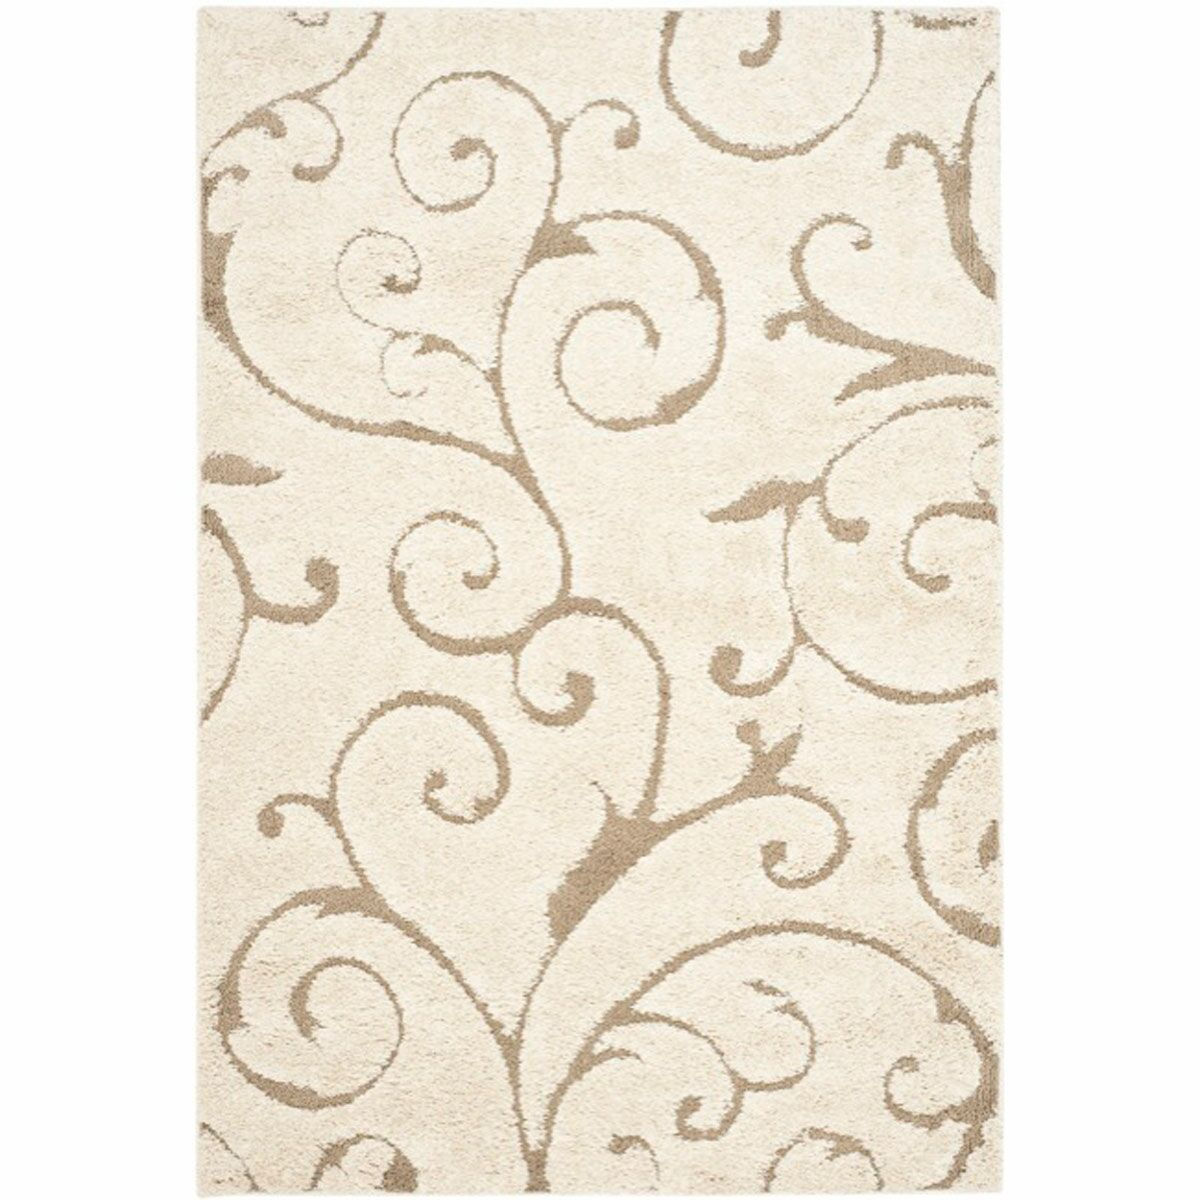 Henderson Cream Area Rug Rug Size: Rectangle 4' x 6'